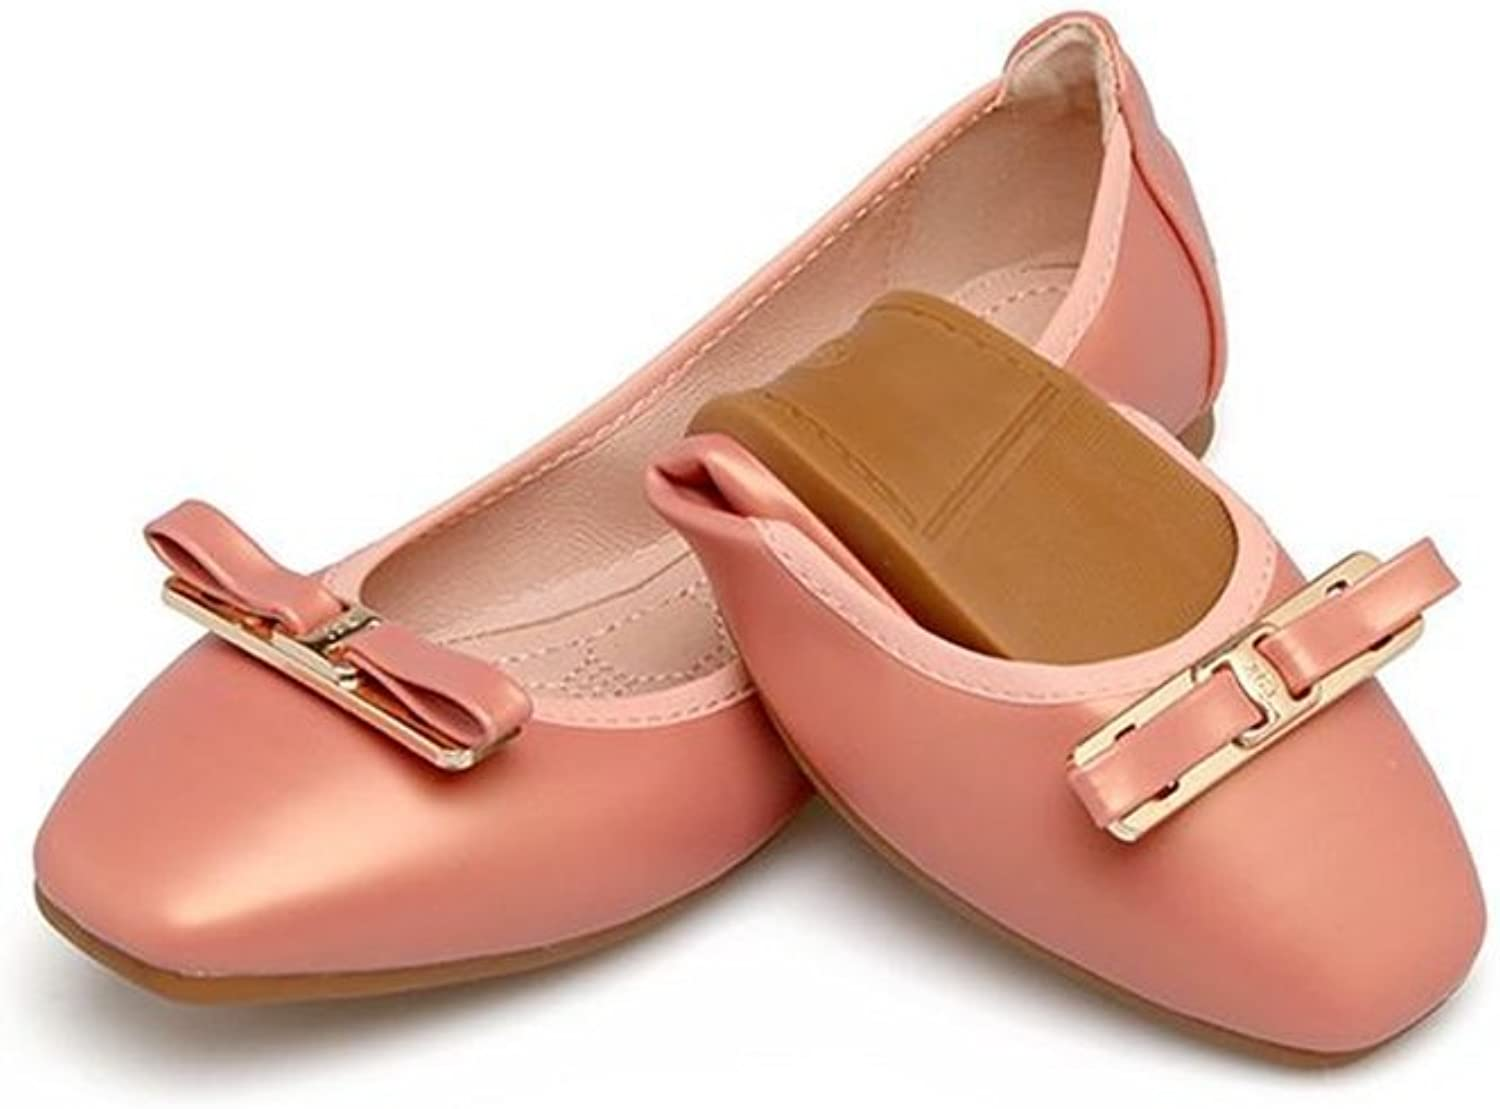 Women's Flodable Ballerina Walking Casual Flats shoes